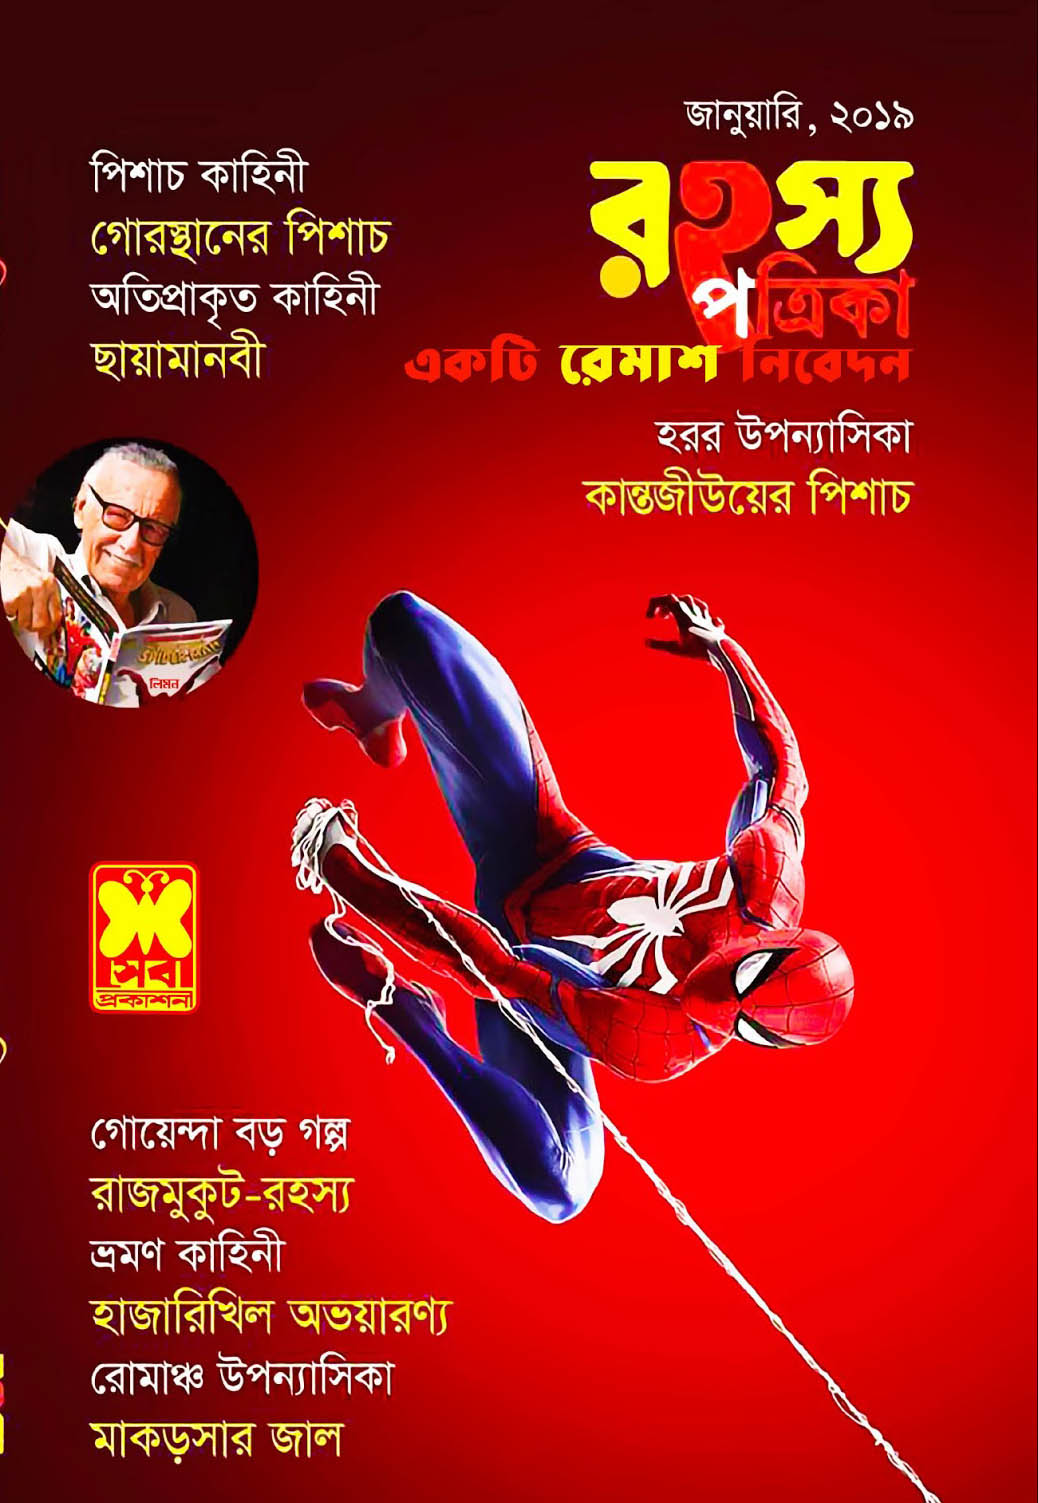 Book bangla for mobile pdf